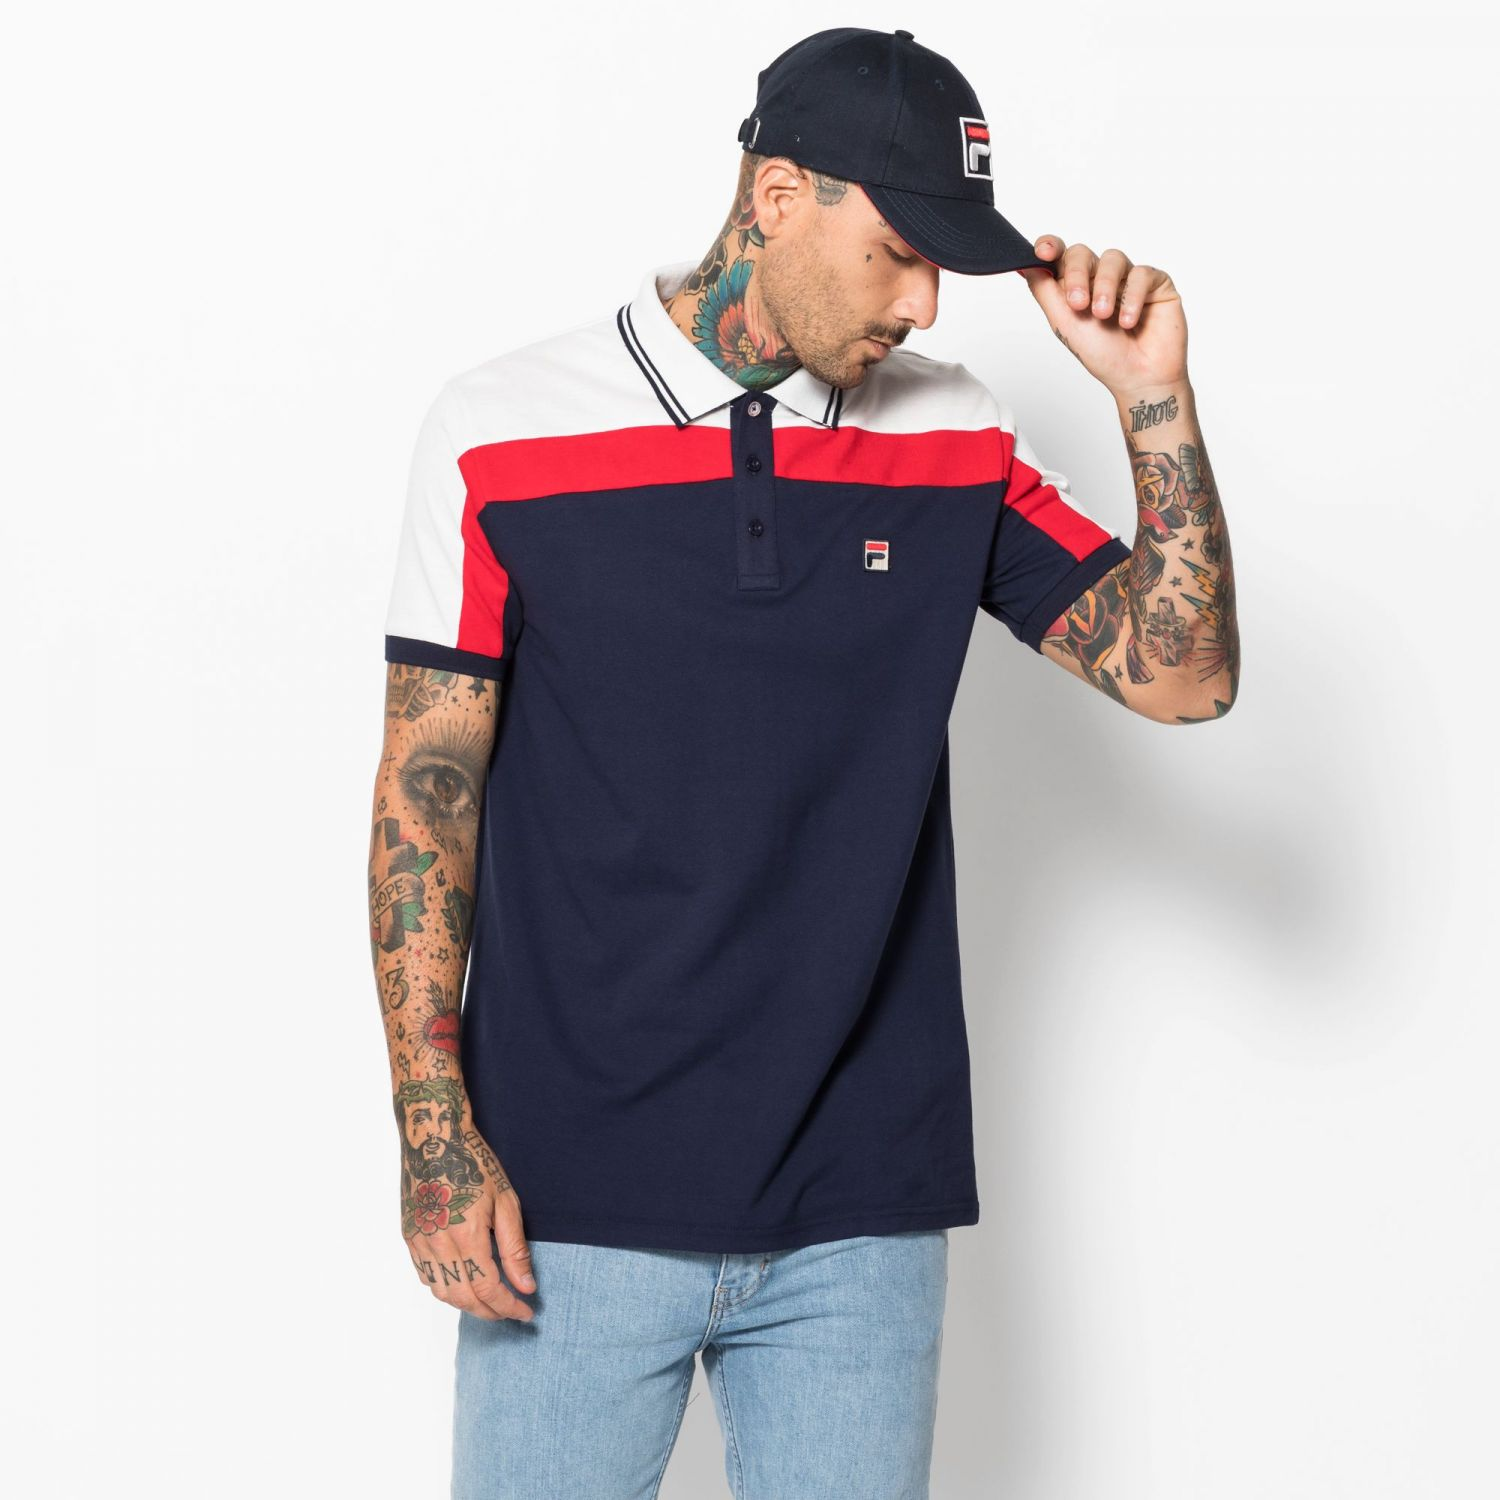 b705a953ff87 Fila - Cut   Sew Panel Slim Fit Polo - 000142016...